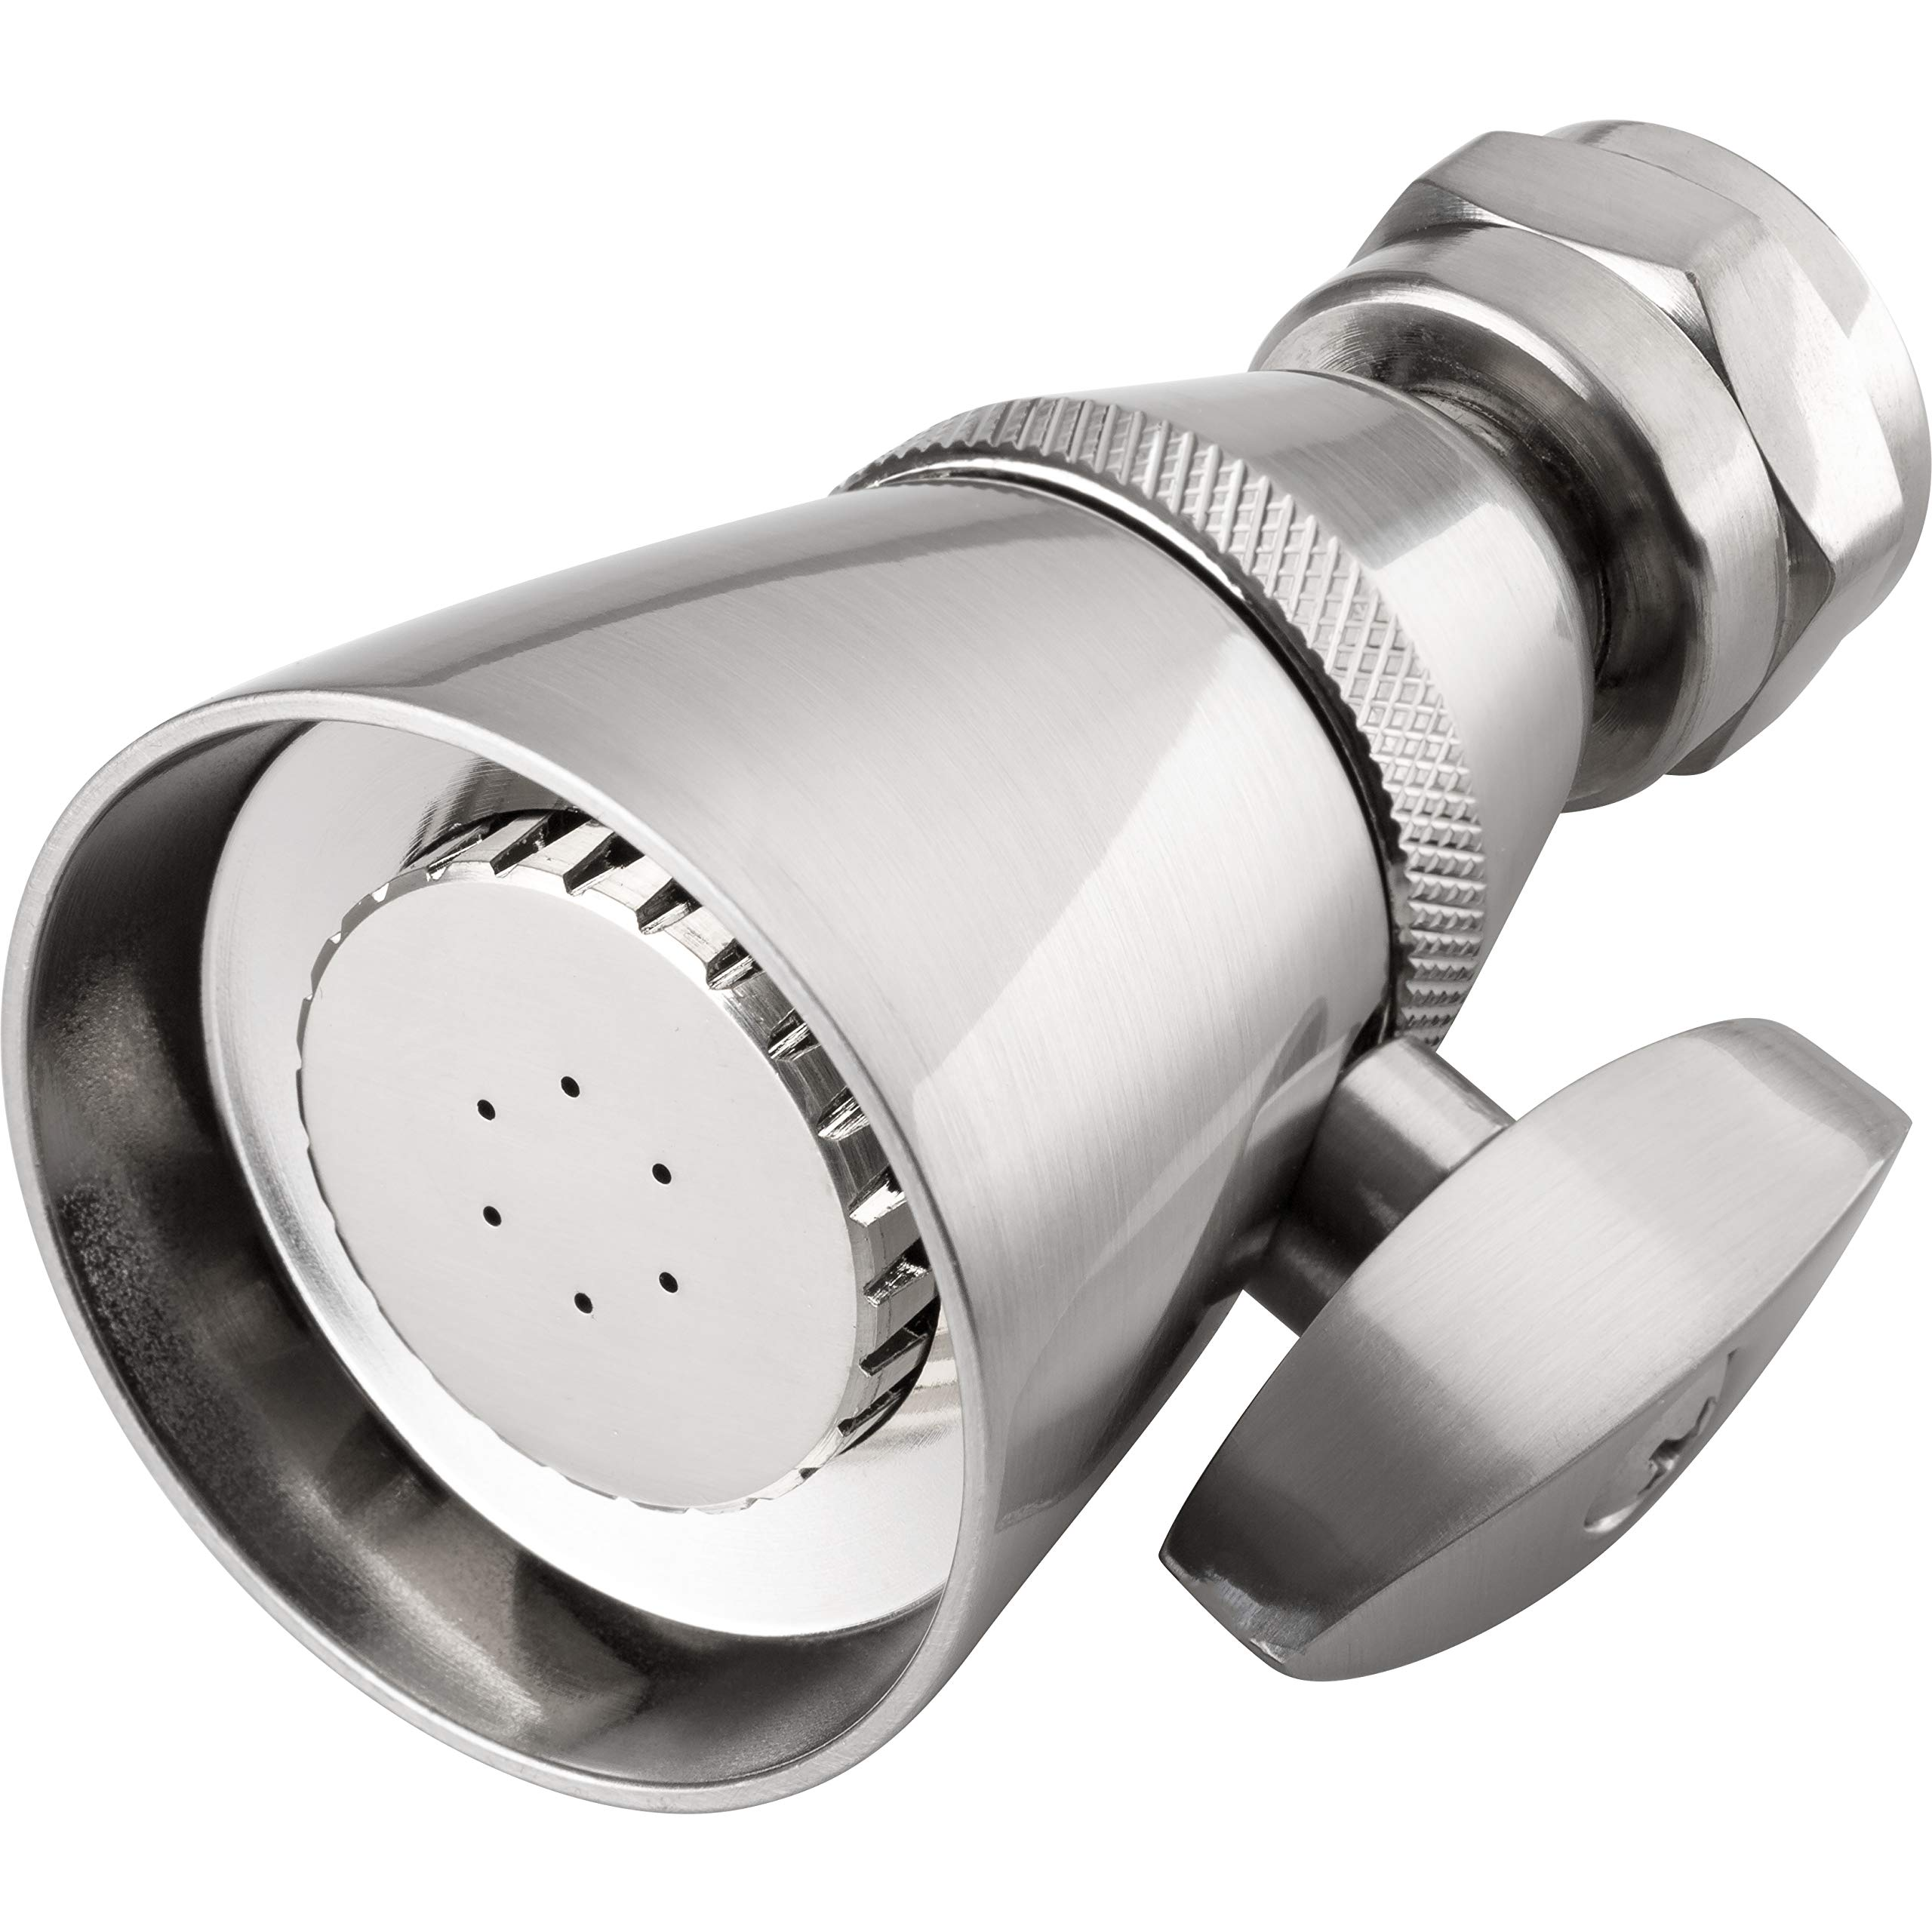 Pacific Bay Kelso 1 3/4-inch Brass Shower Head (Brushed Satin Nickel Plated)